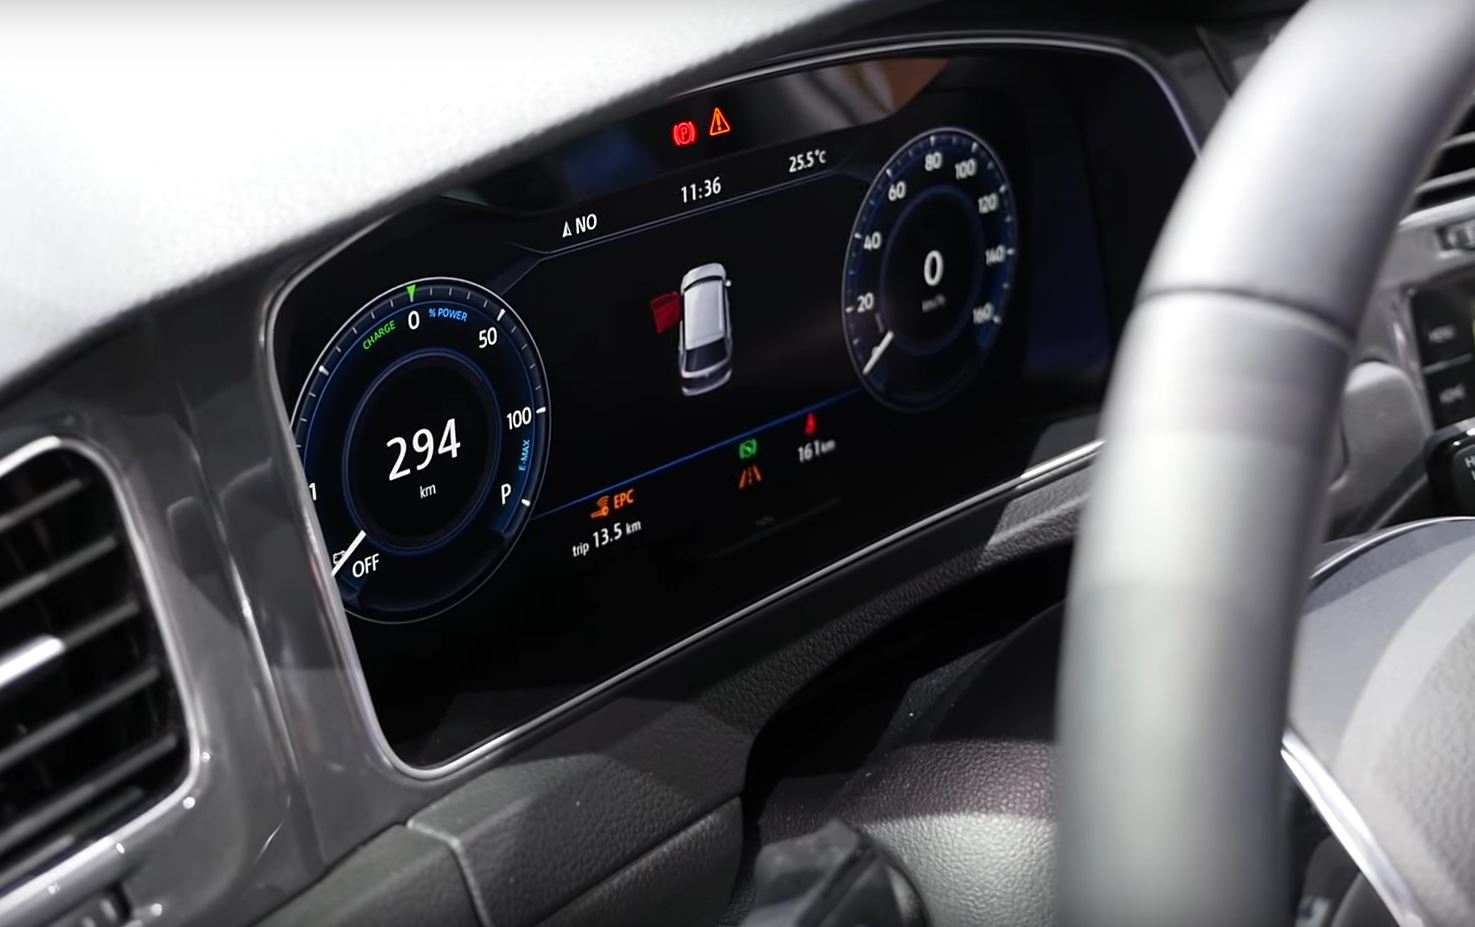 2018 volkswagen golf r interior. unique golf new golf interior for 2017 revealed by egolf touch concept  volkswagen throughout 2018 volkswagen golf r interior w